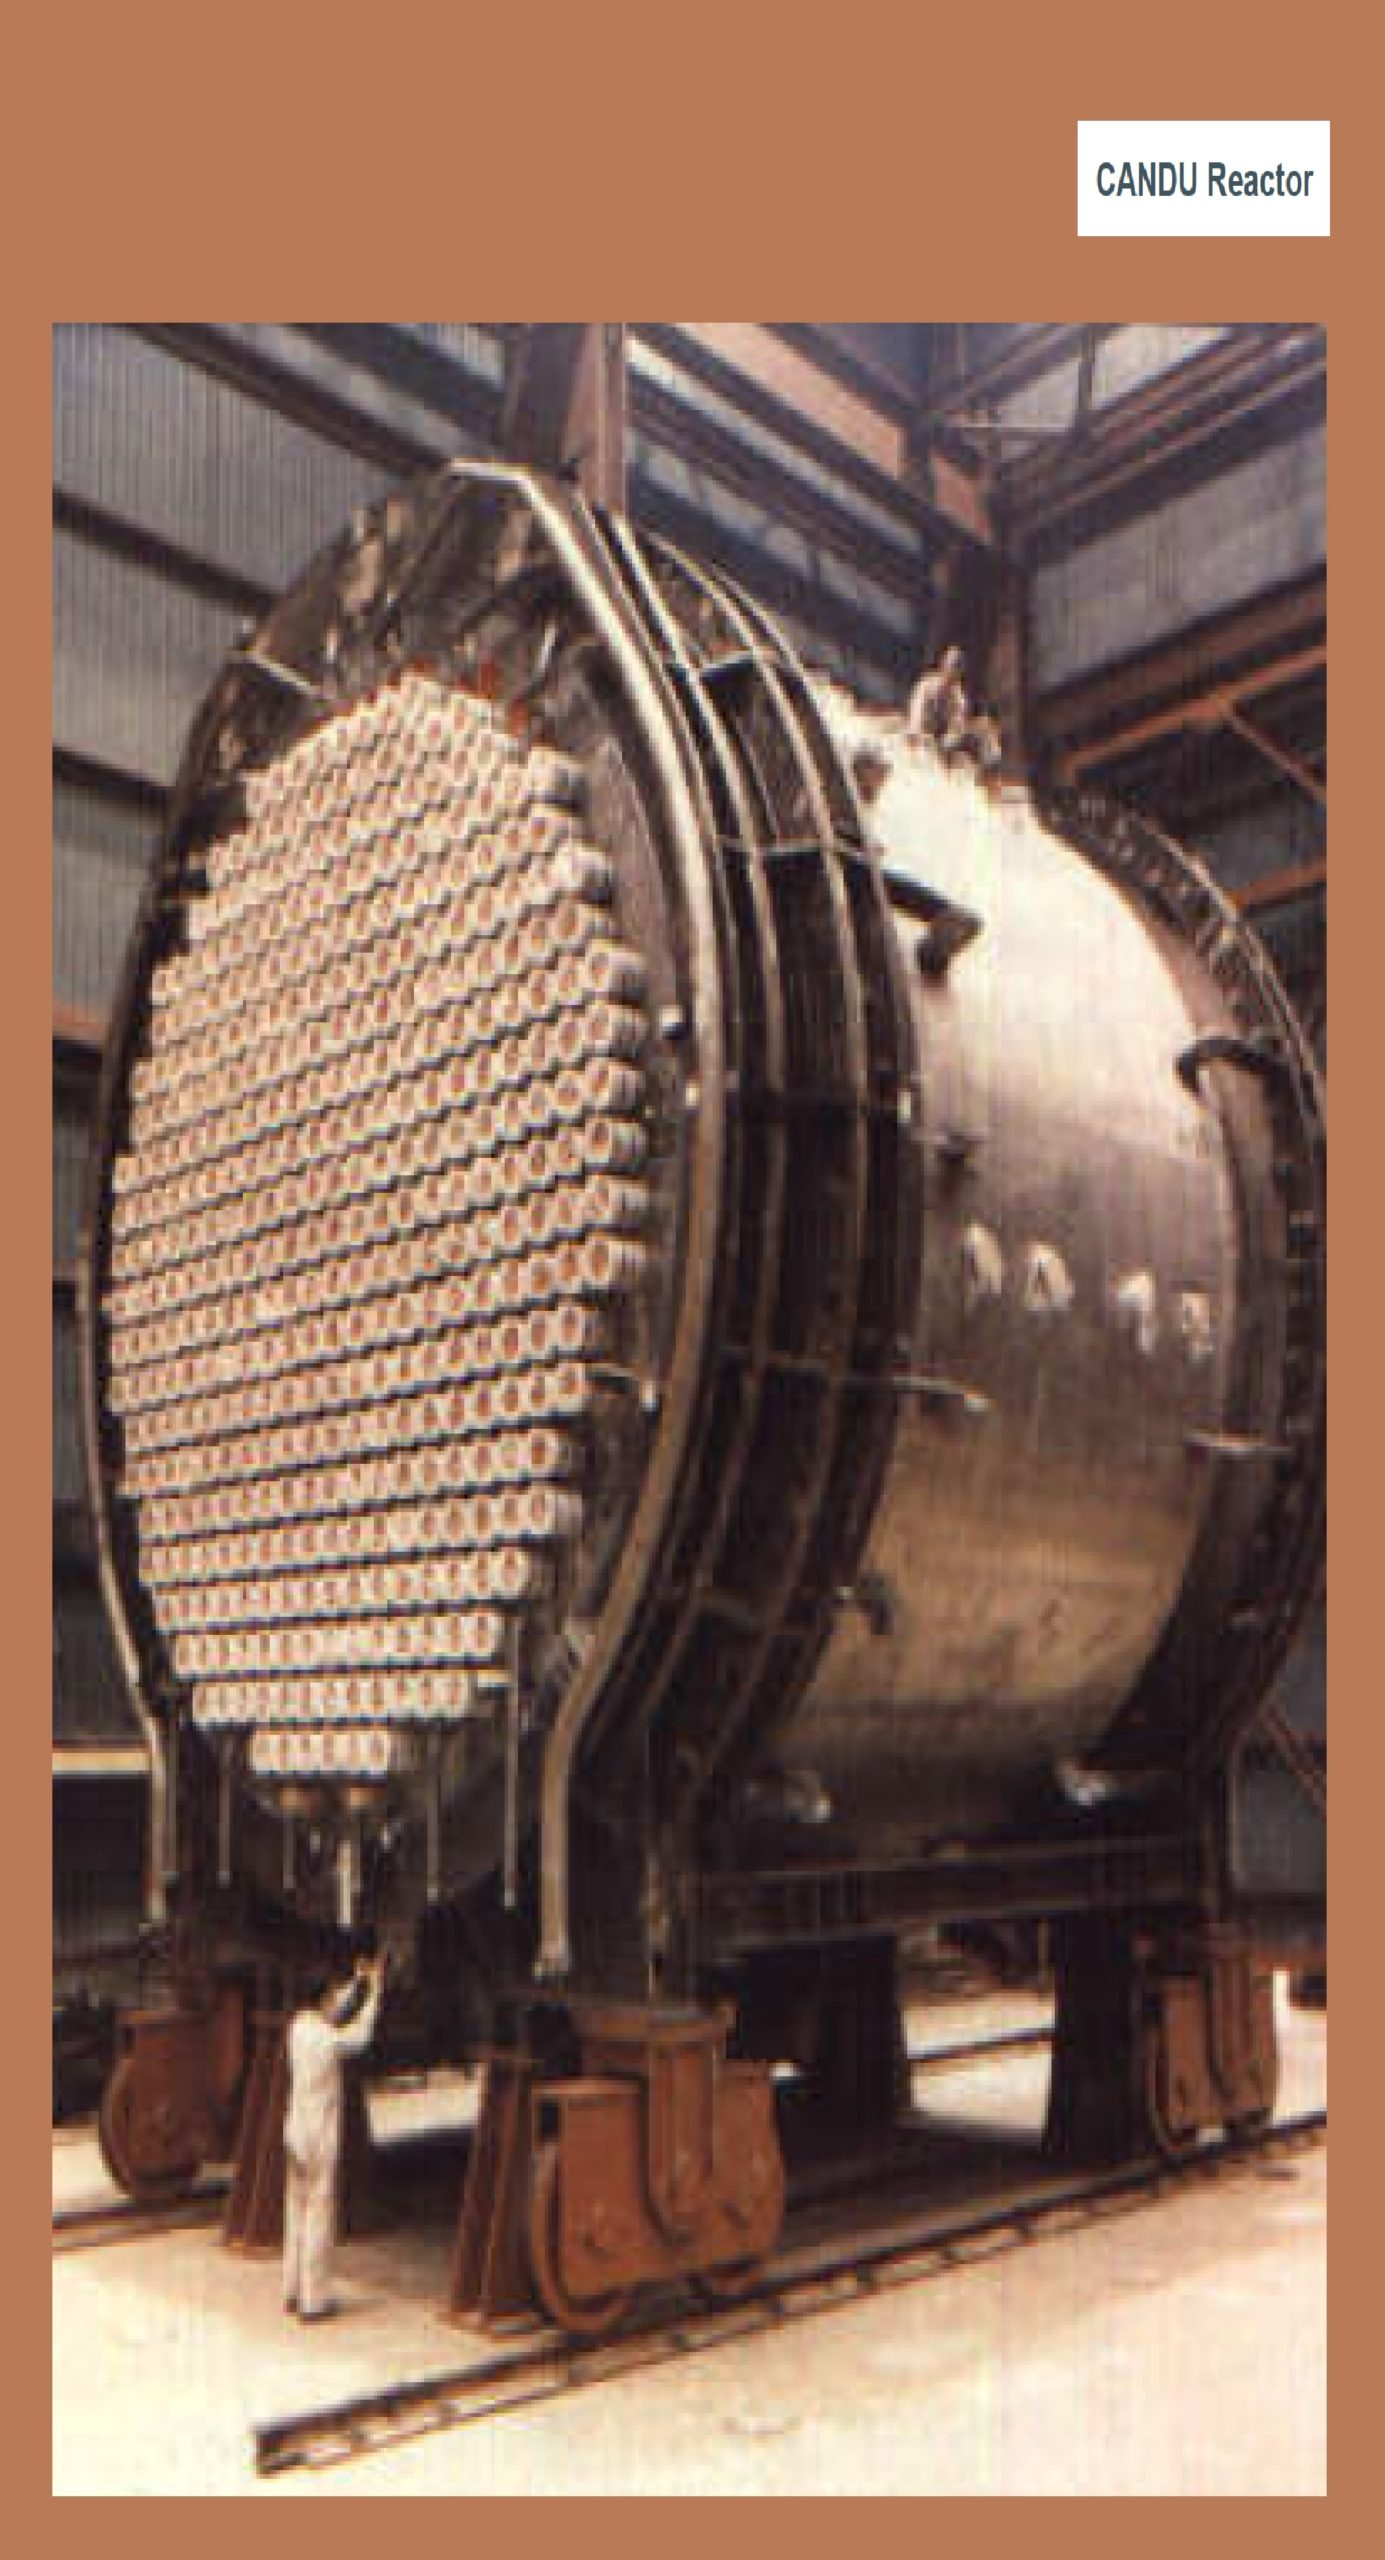 About Nuclear Fuel 2